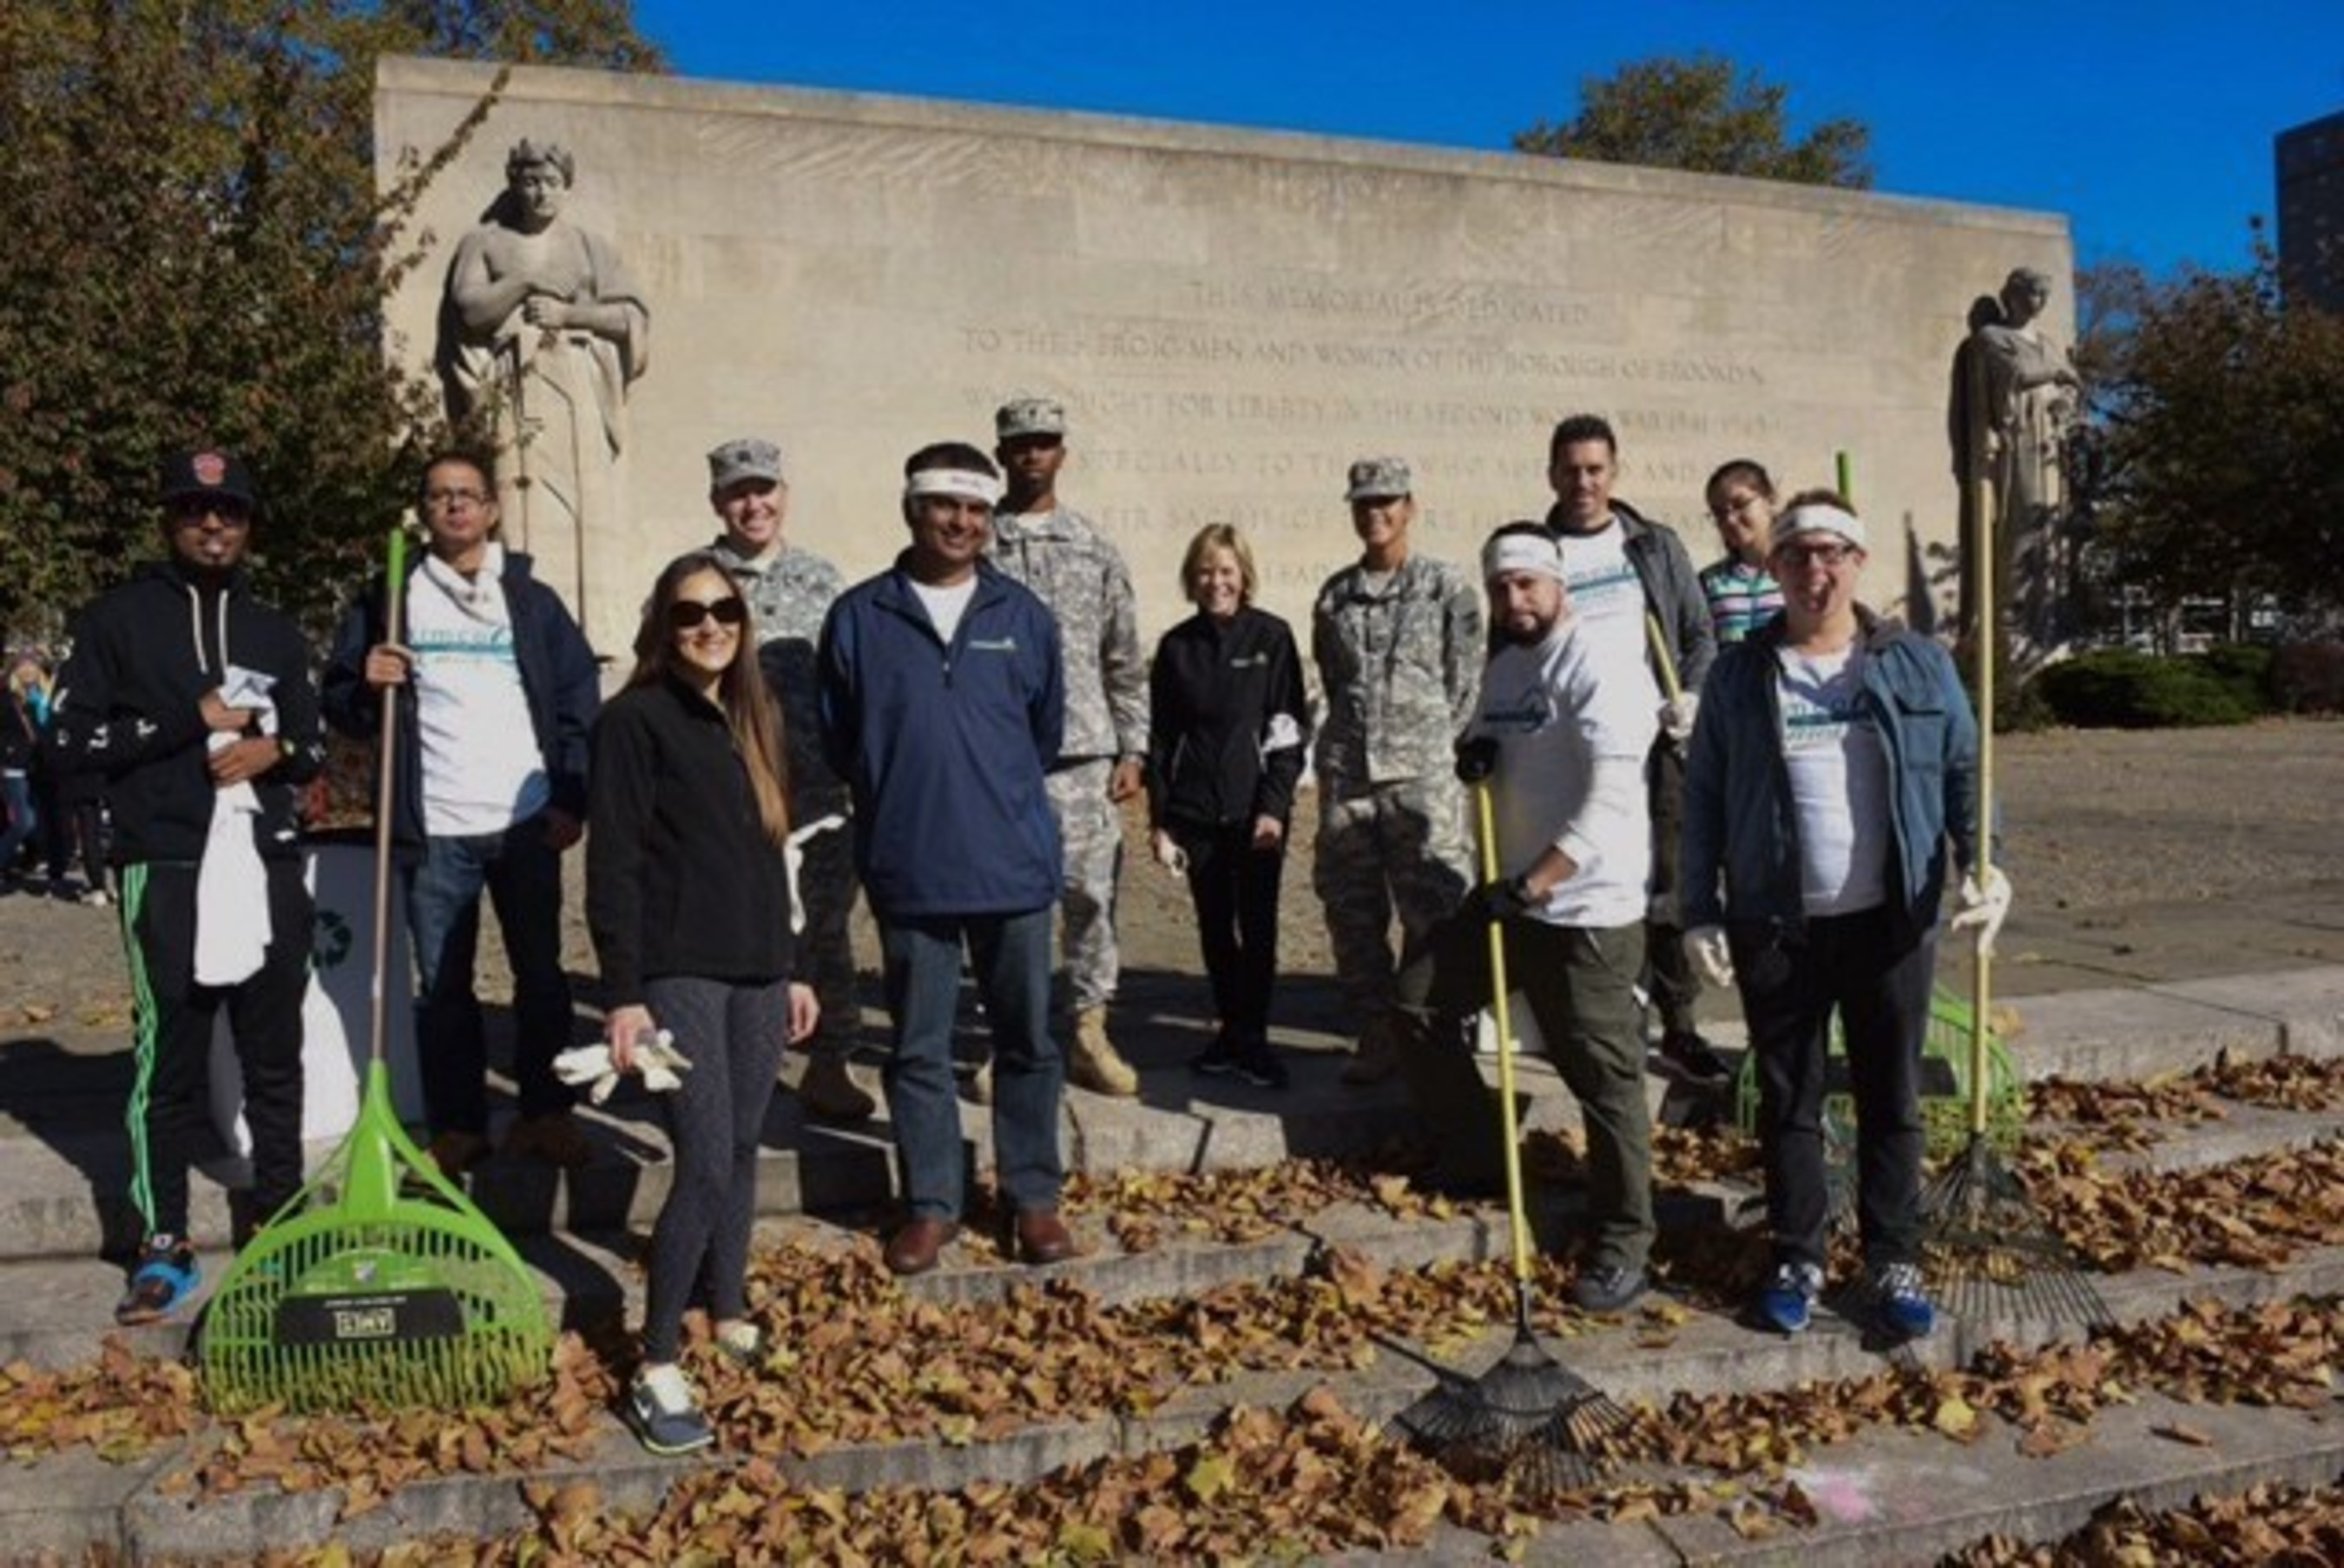 Aimco Gives Back to Veterans with Expanded National Volunteer Initiative and Contributions to Veterans Organizations